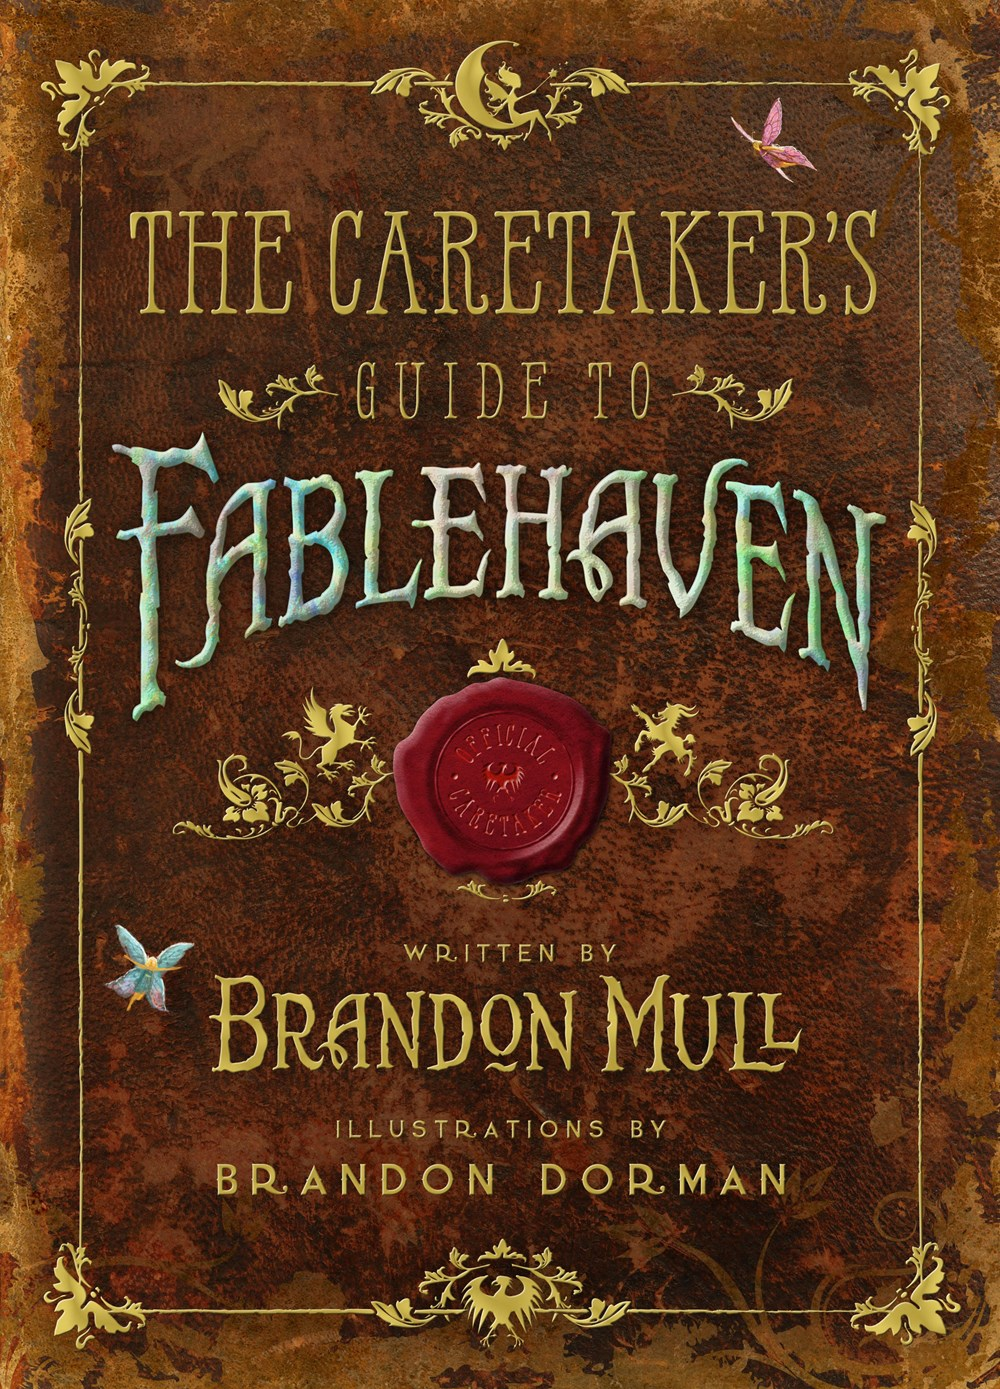 The Caretaker's Guide to Fablehaven (Dragonwatch Series)